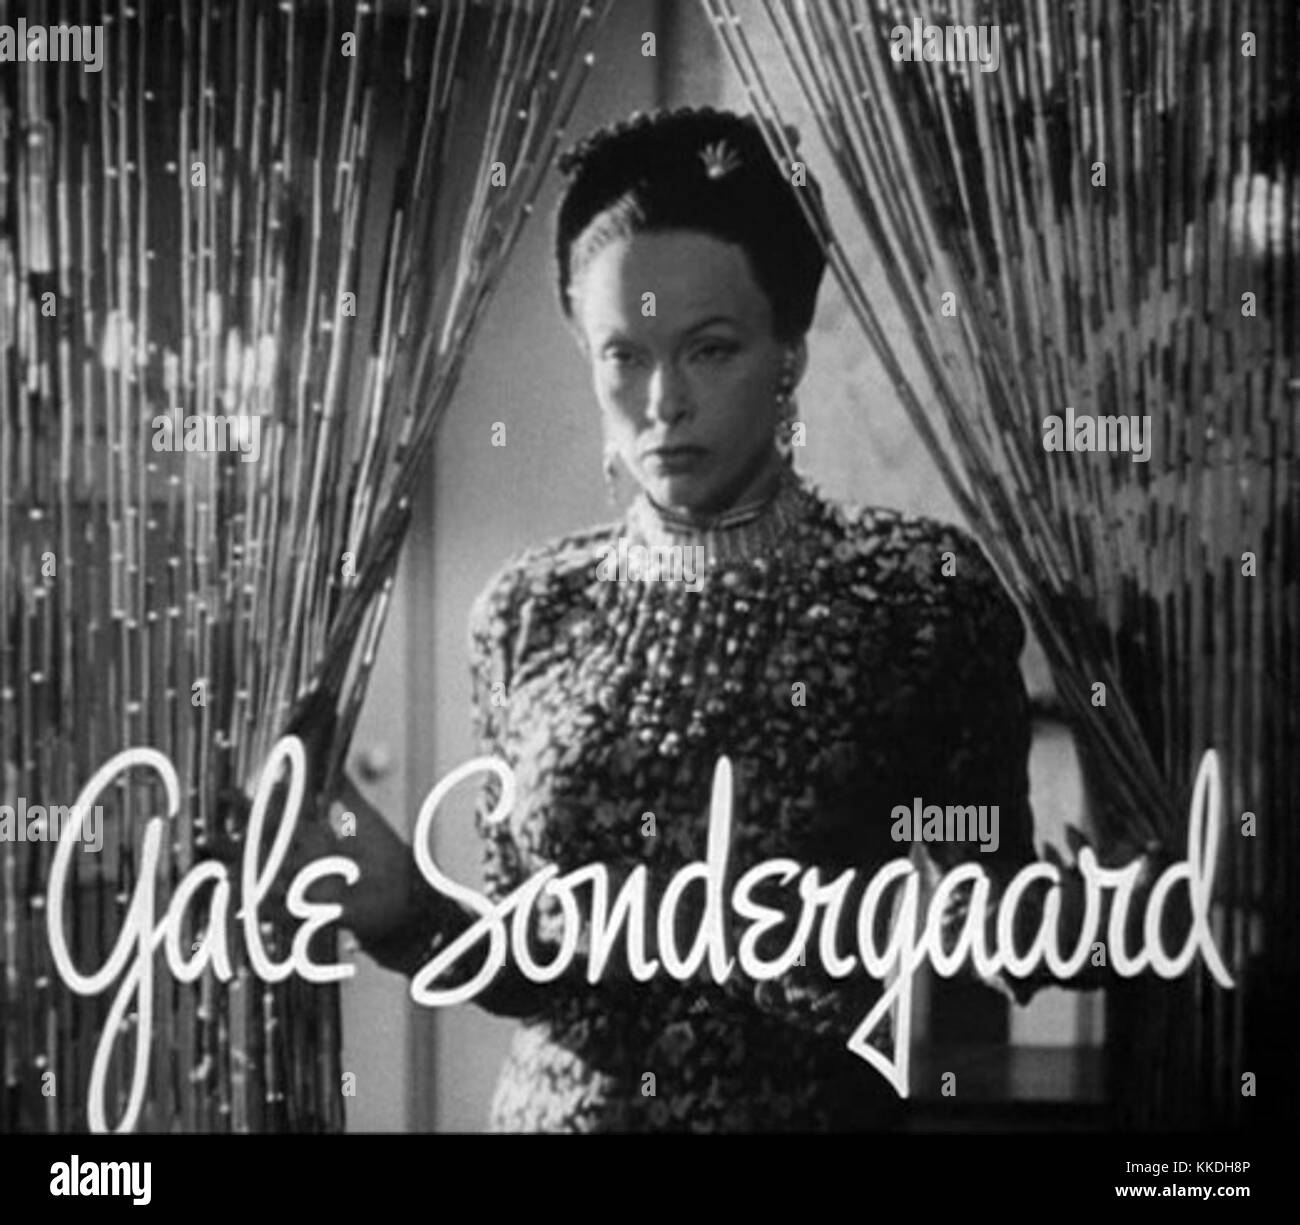 Gale Sondergaard in The Letter trailer Stock Photo: 166870726   Alamy